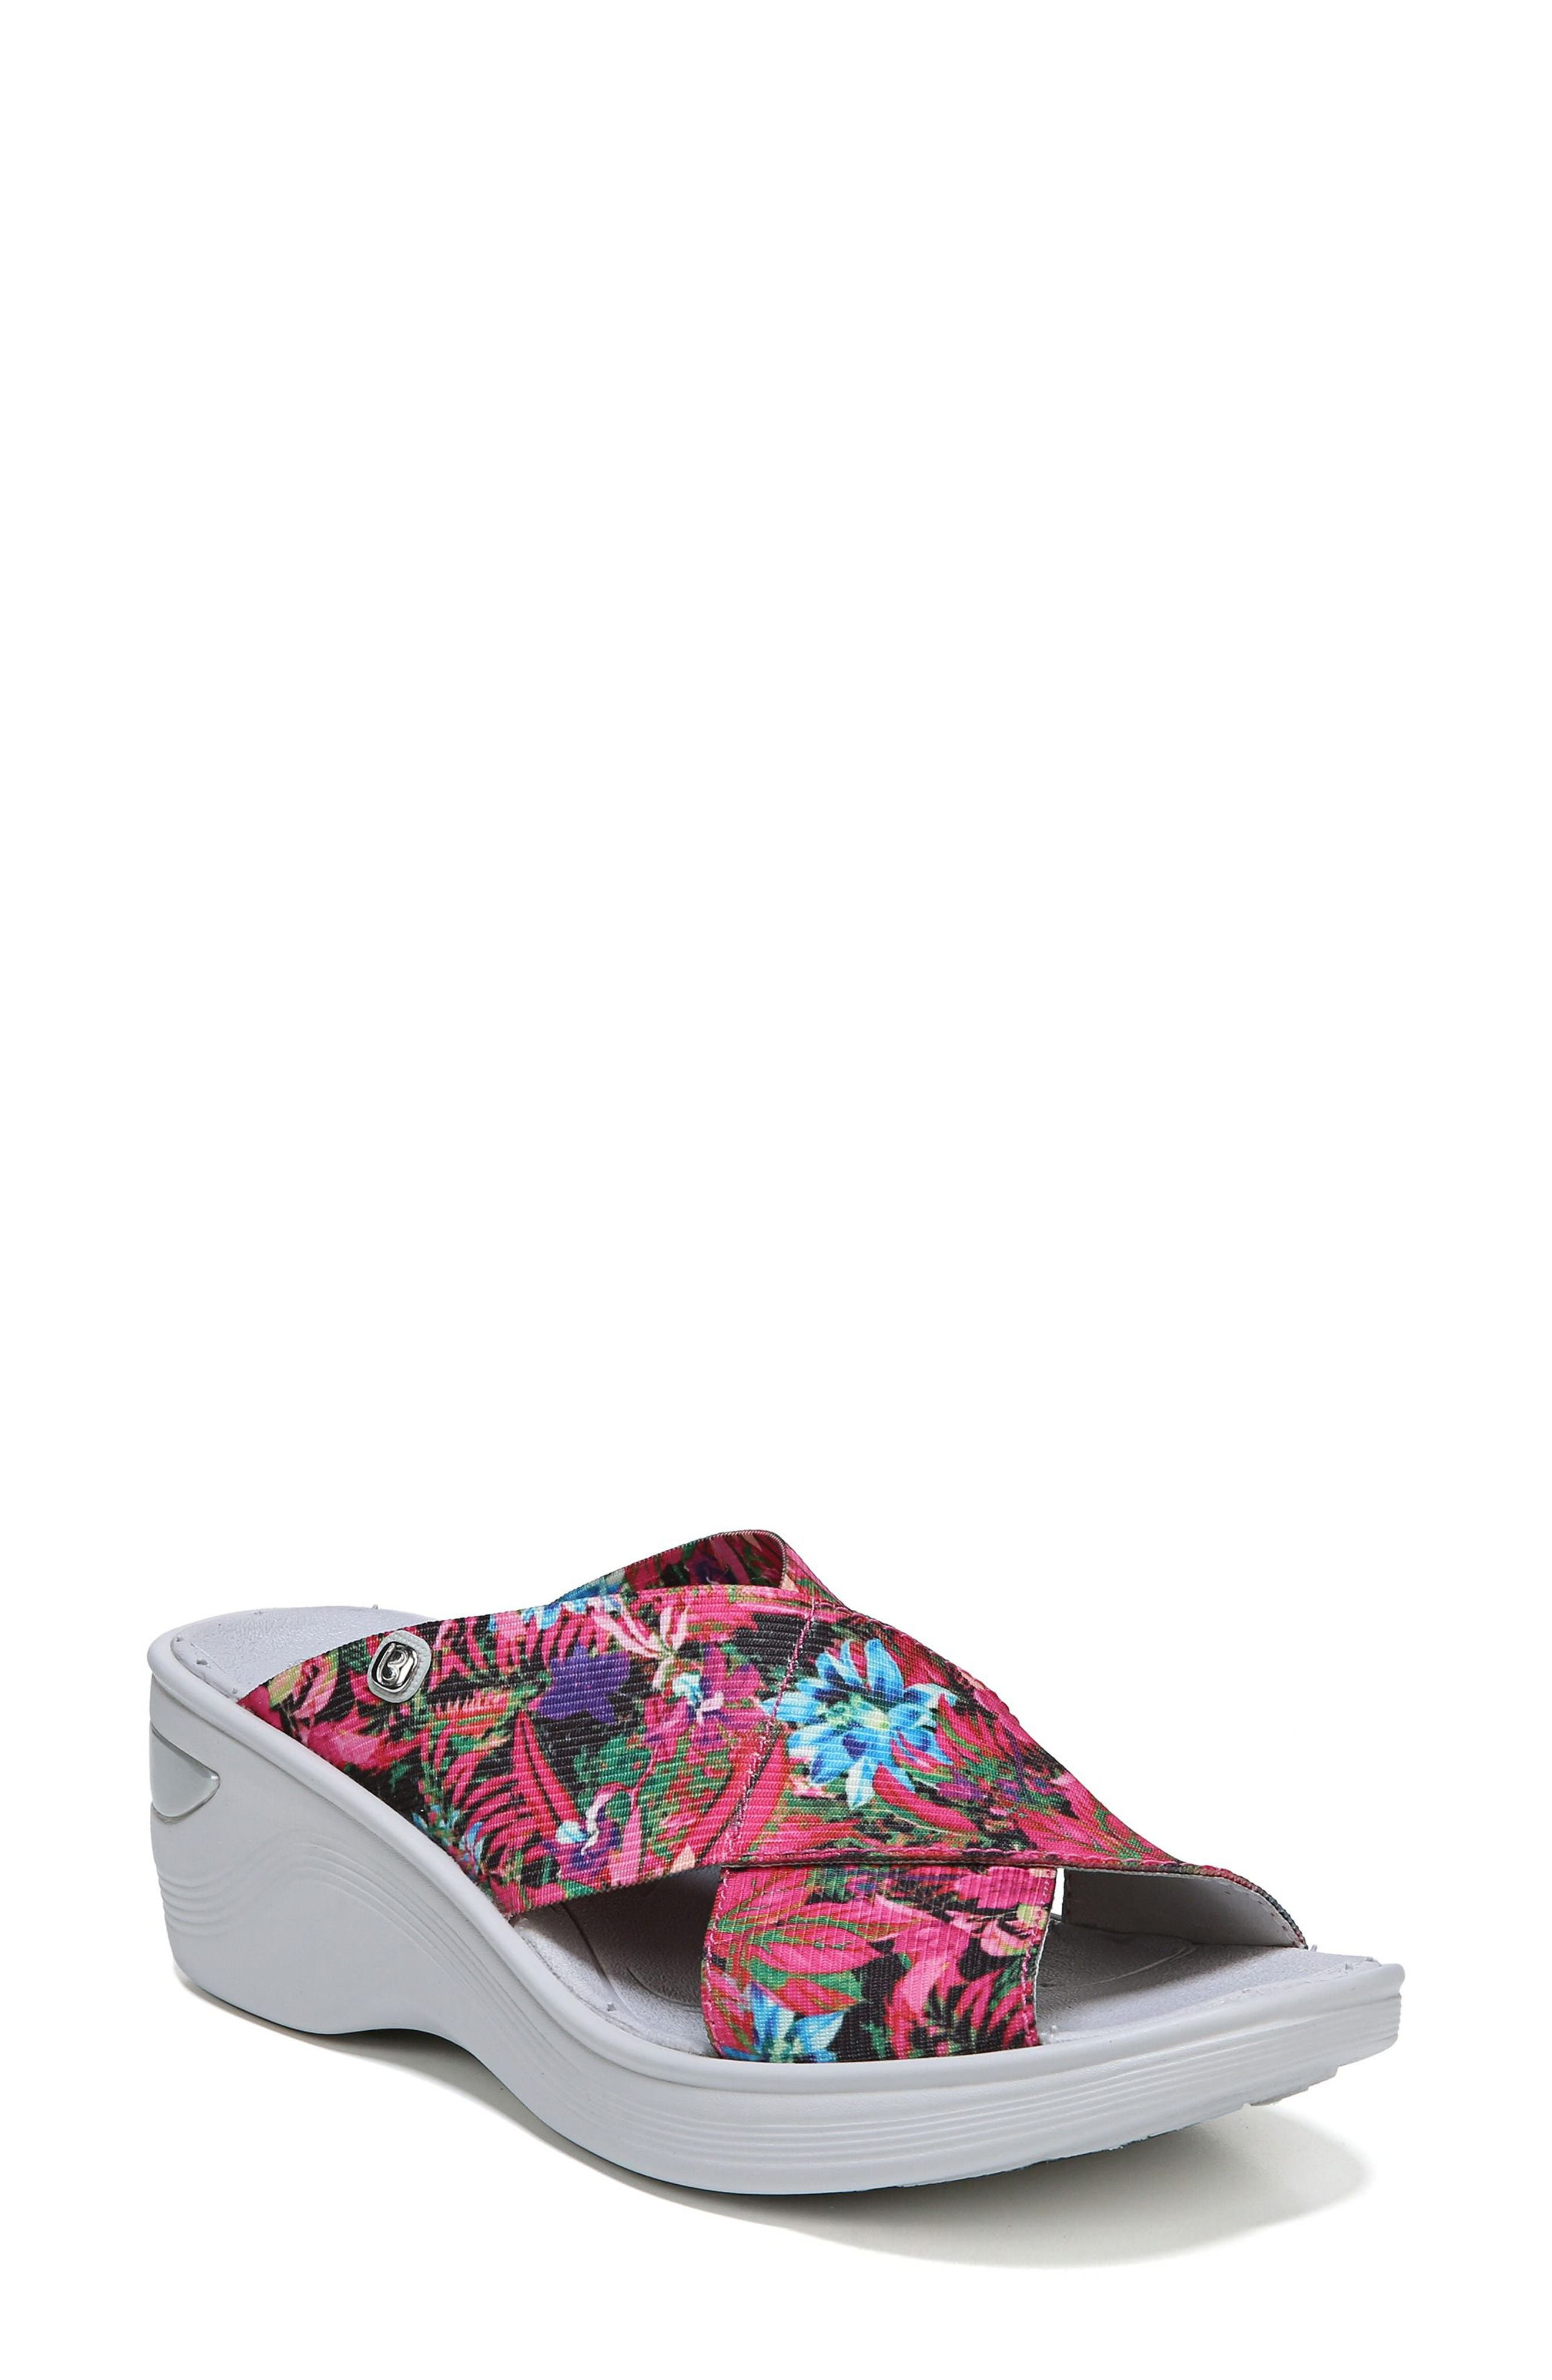 'Desire' Wedge Sandal,                         Main,                         color, Pink Floral Fabric